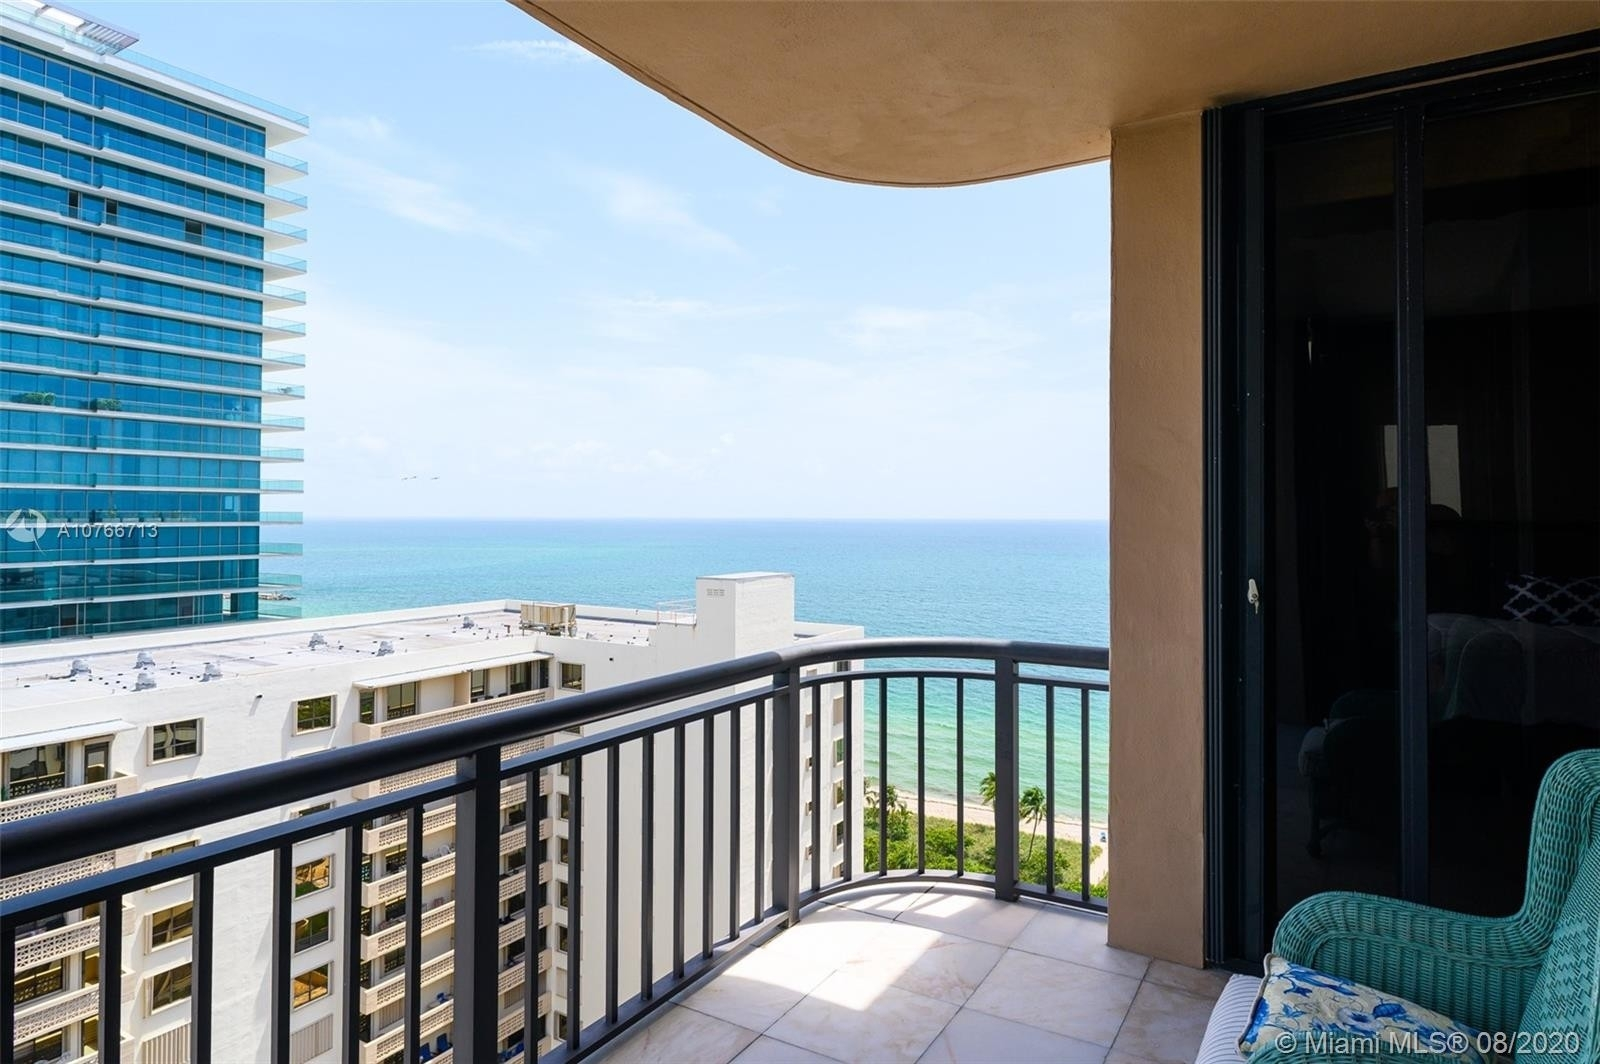 32. Condominiums for Sale at 10175 Collins Ave , PH5 Bal Harbour, FL 33154